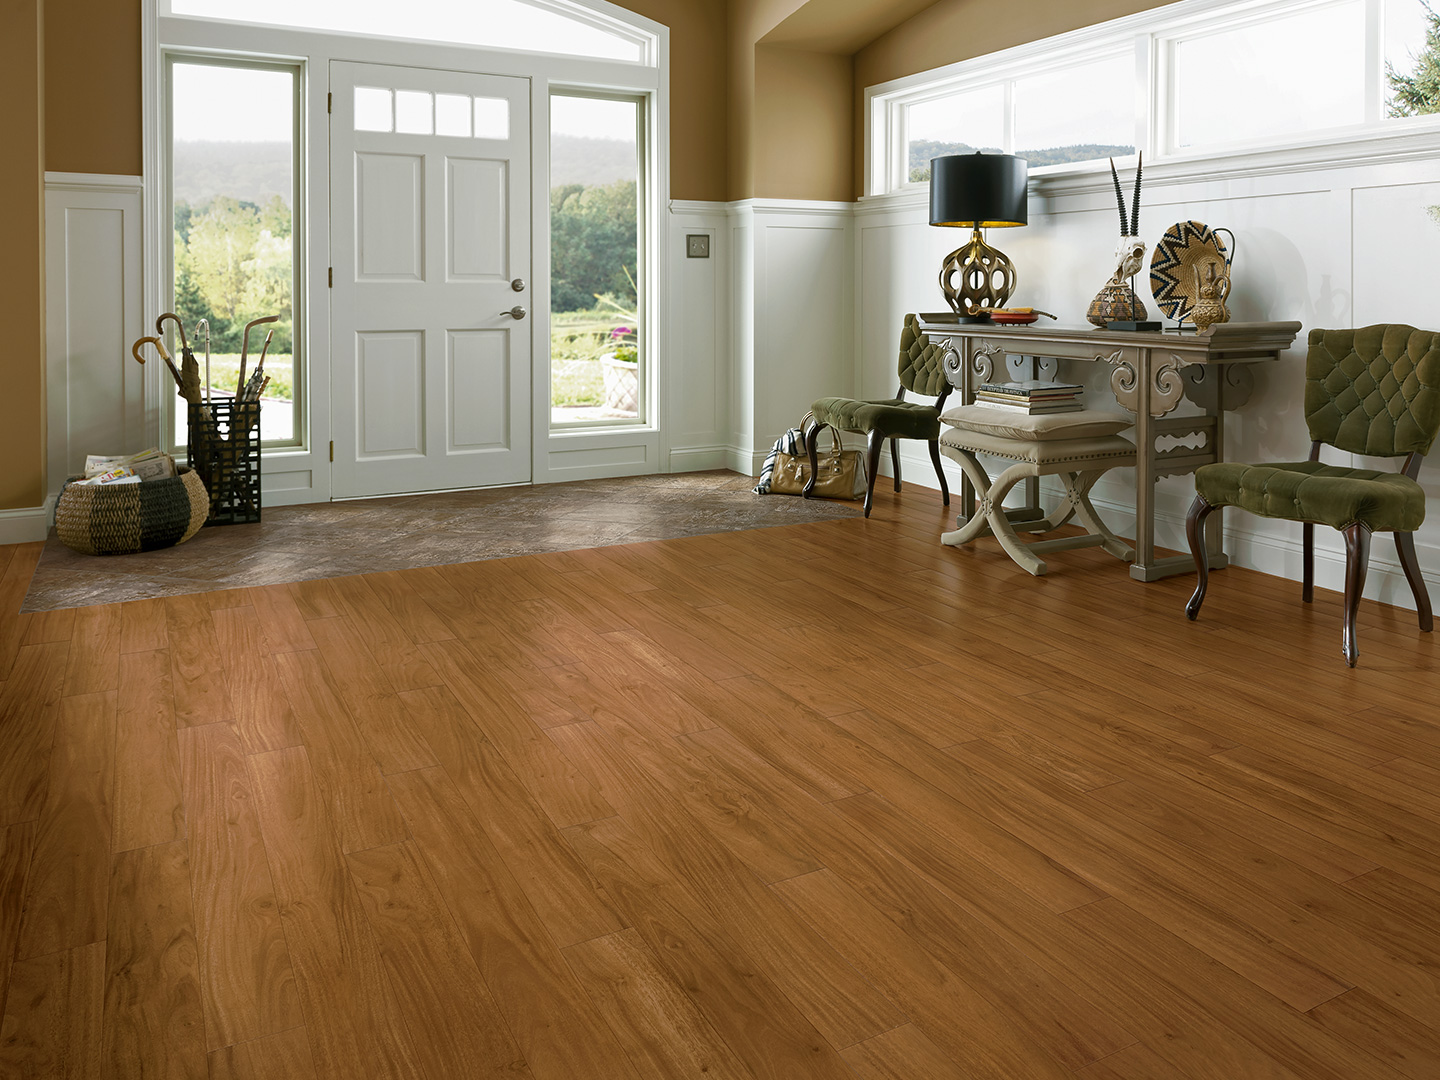 Vinyl Plank Flooring Coretec Plus Hd Xl Enhanced Design